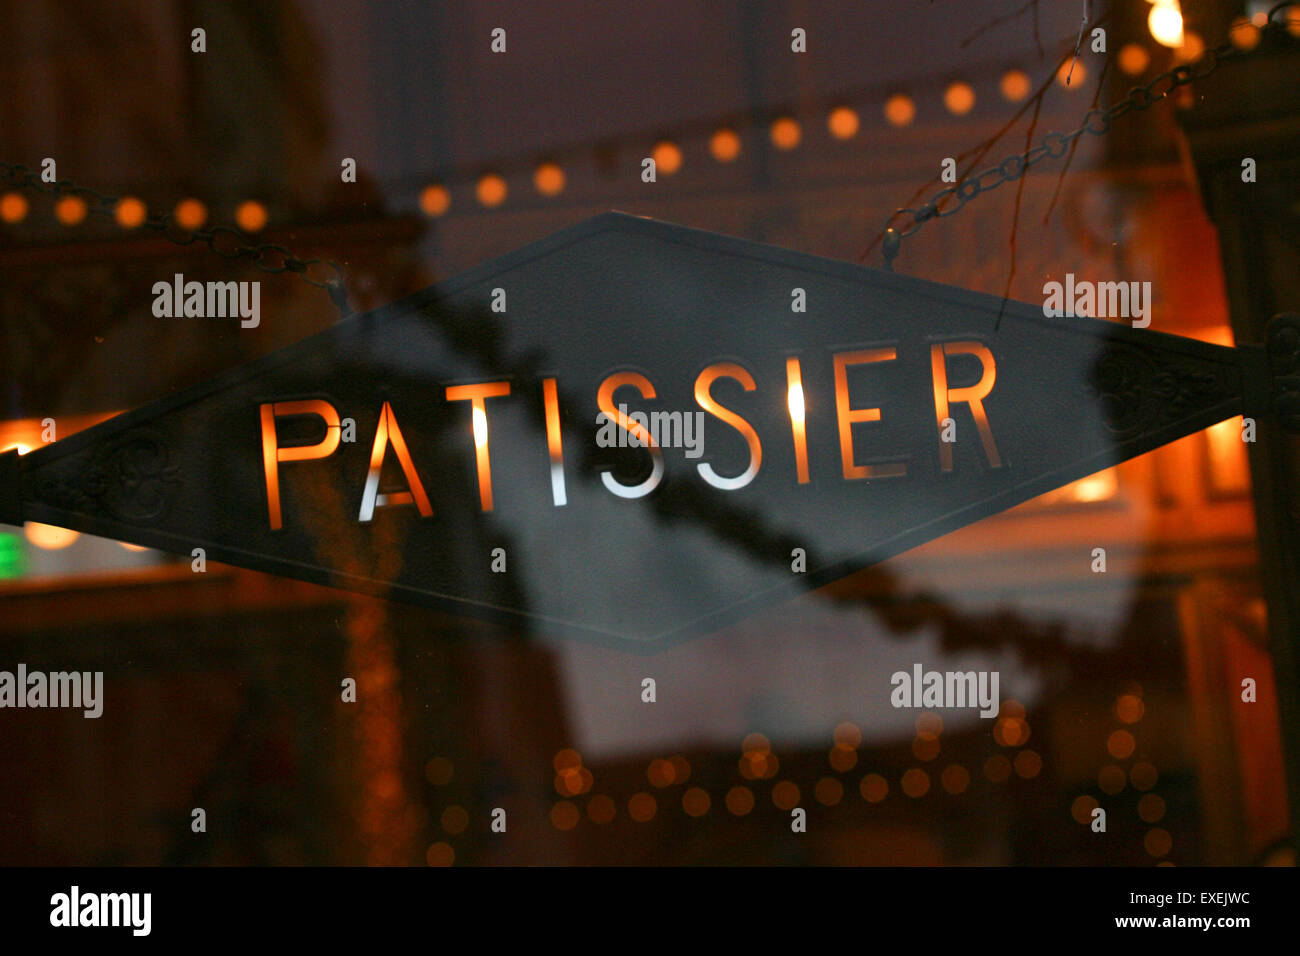 Pâtissier France Stock Photos & Pâtissier France Stock